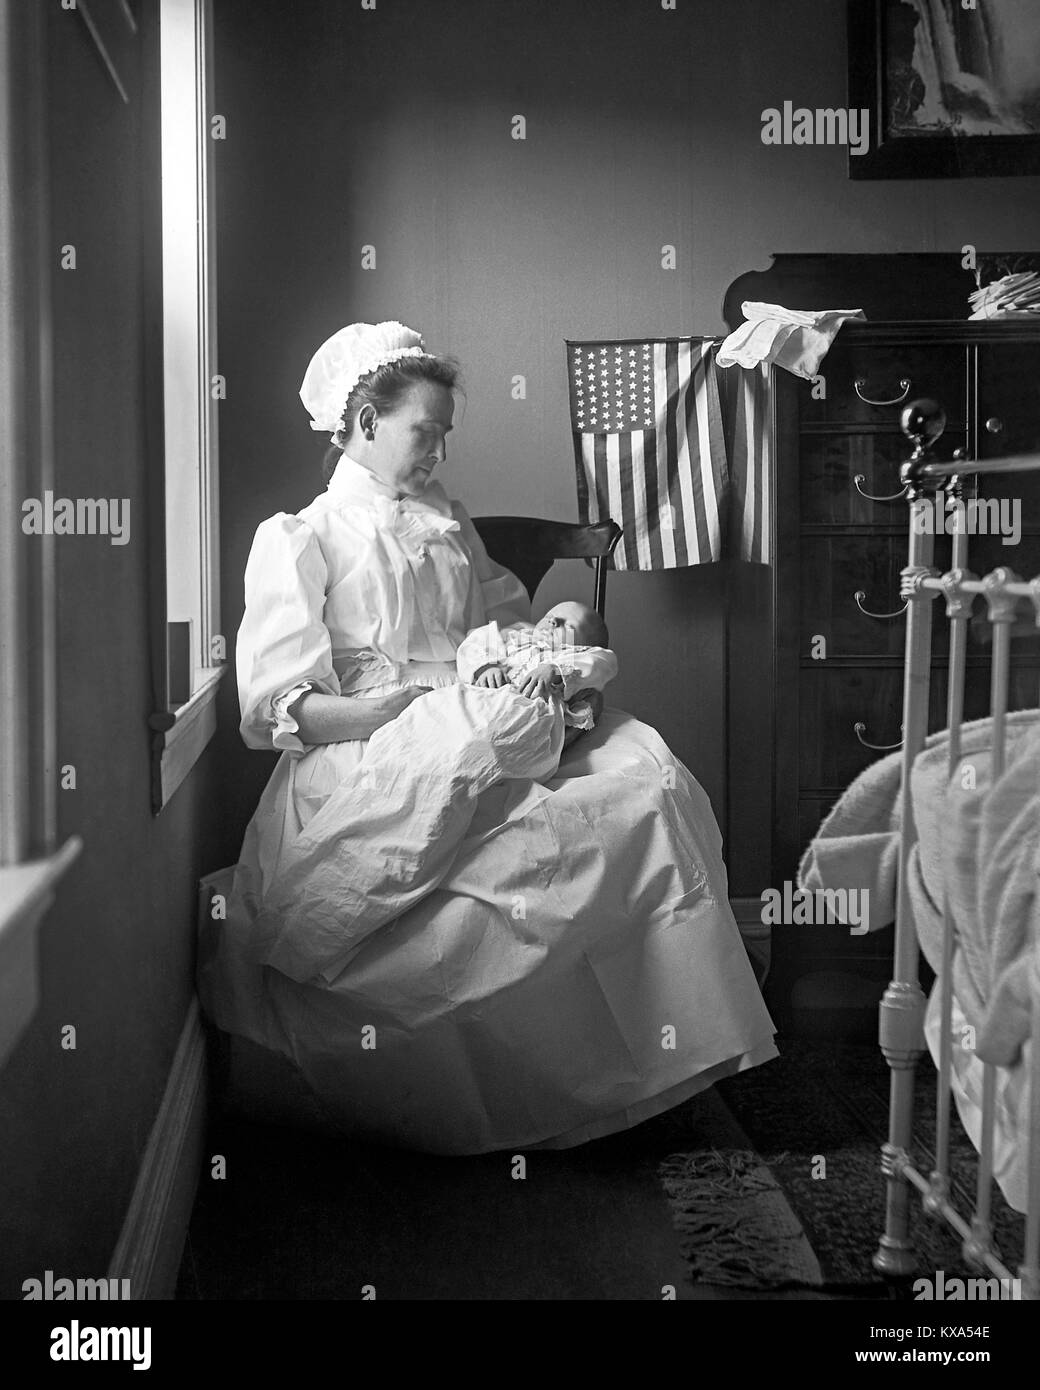 Mother with newborn baby in bedroom. The US Flag with 46 stars was in use from  July  4, 1908 to  July 3, 1912. - Stock Image